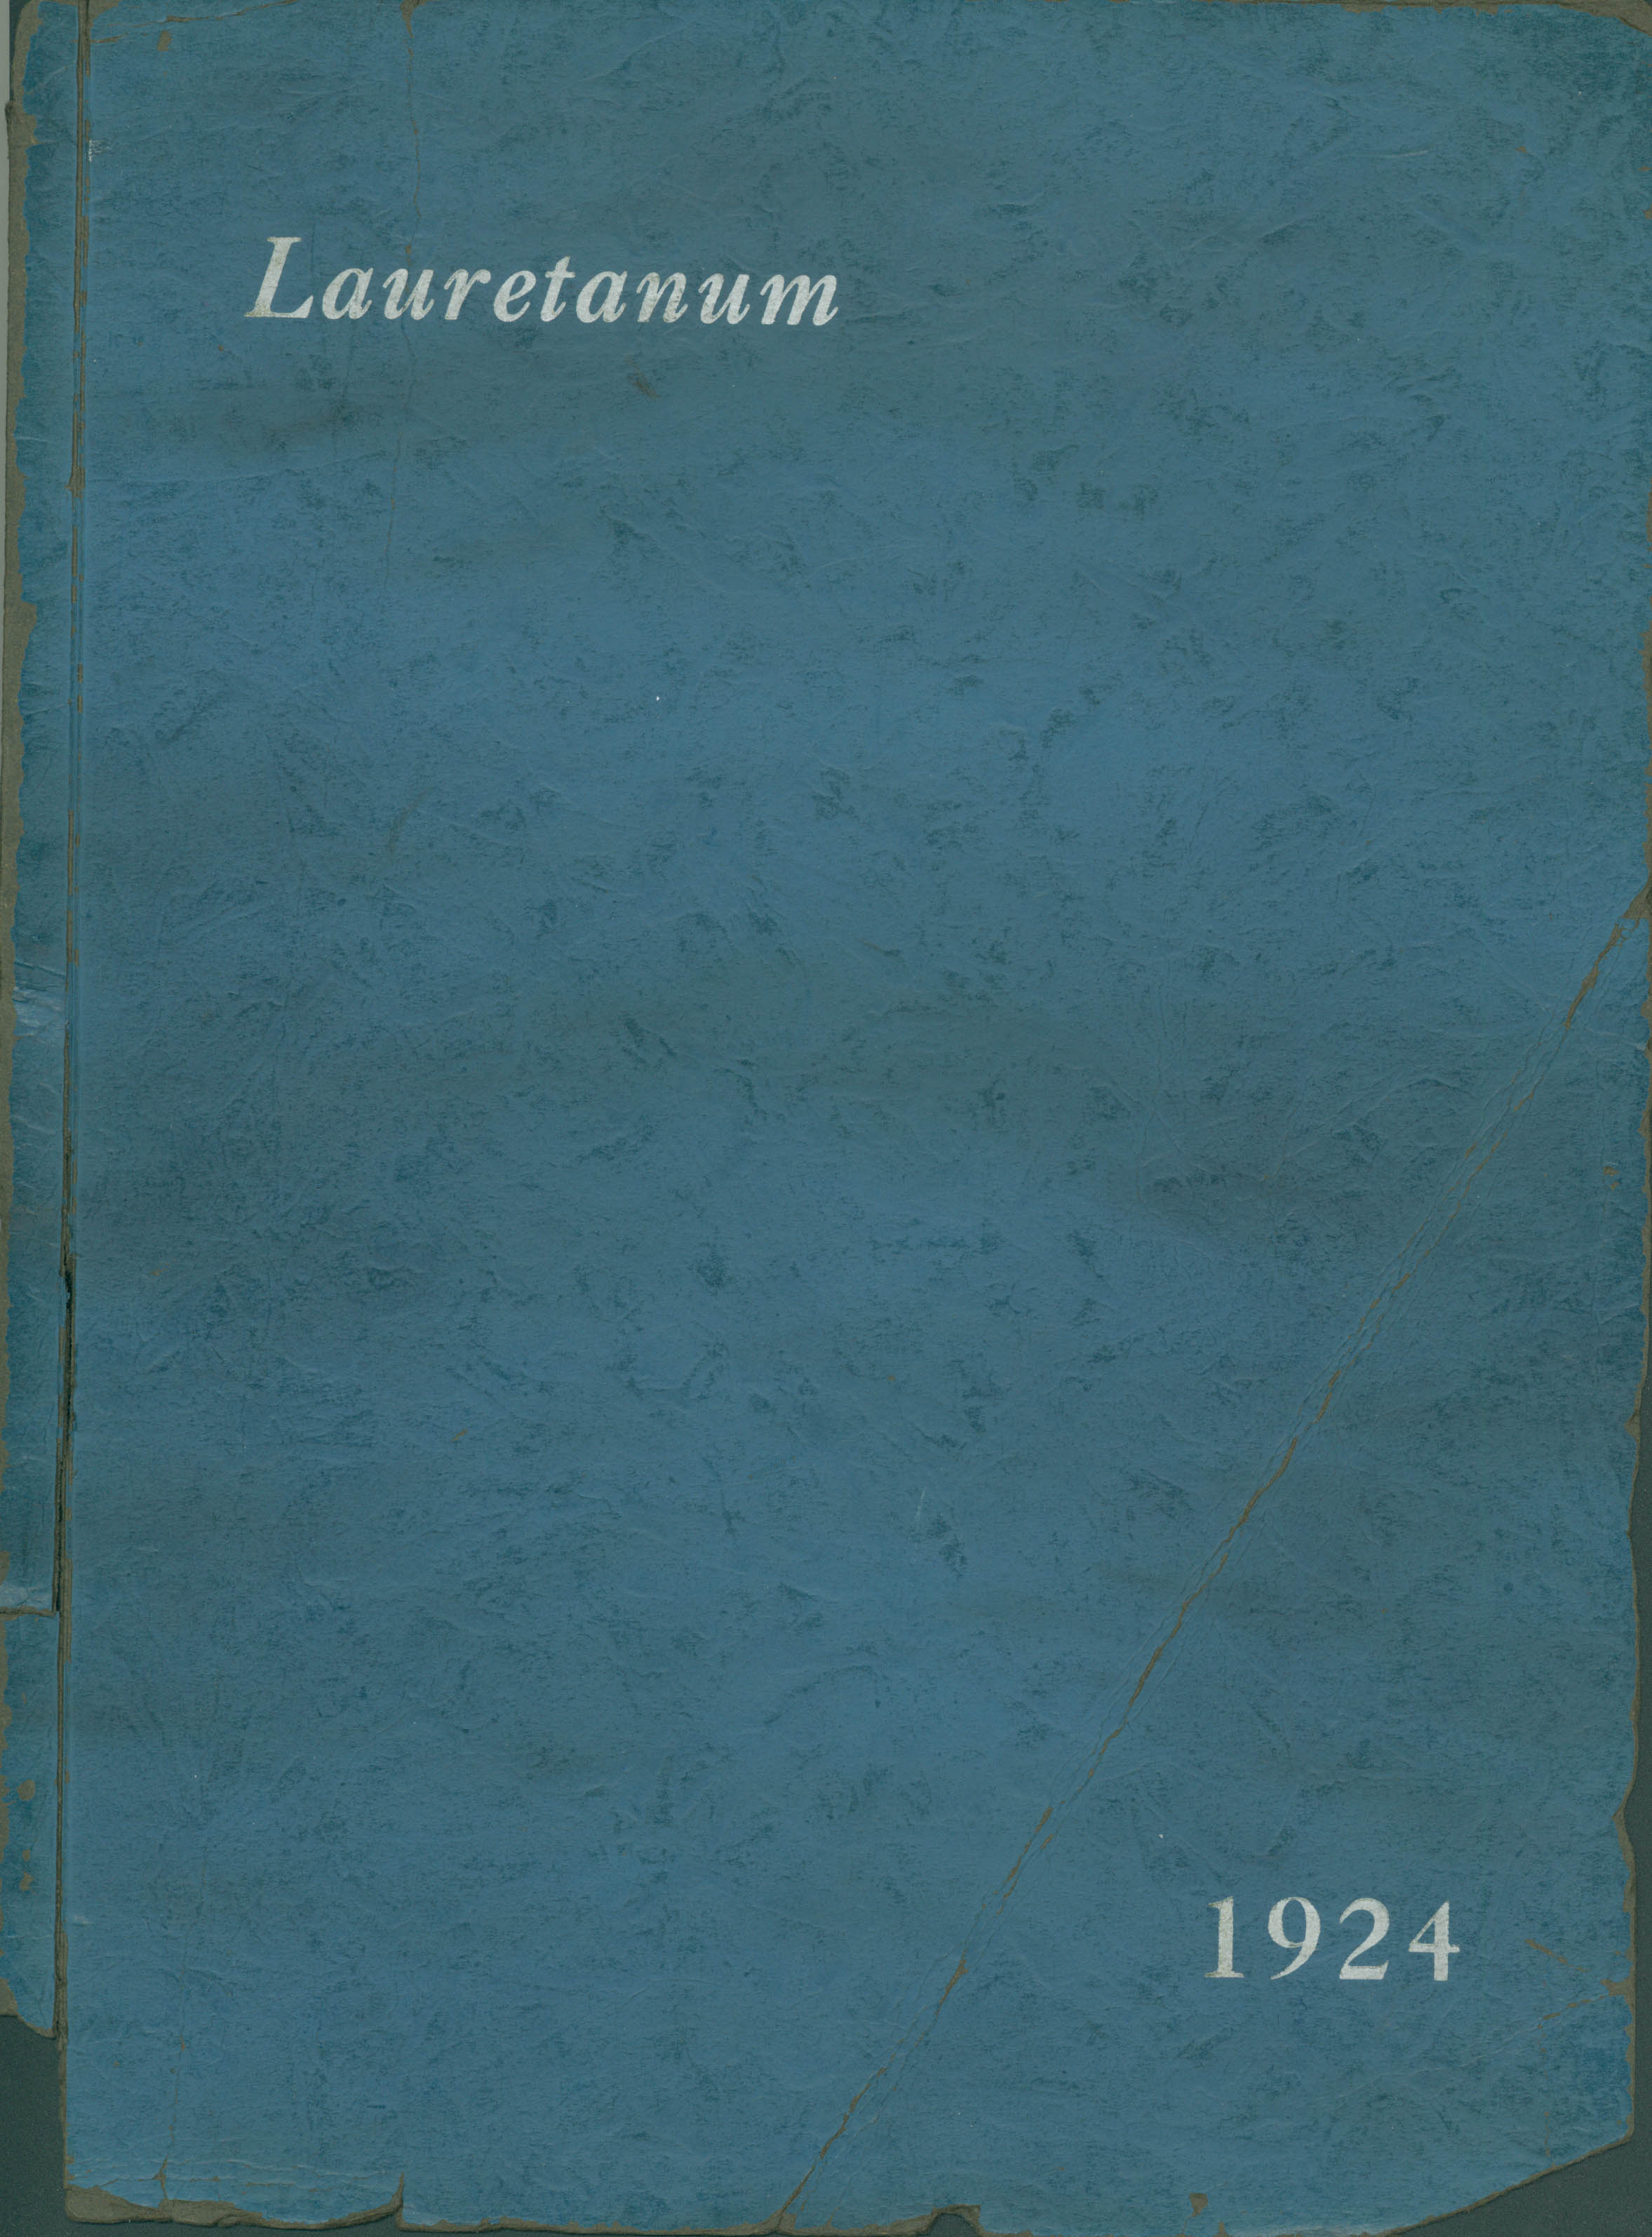 [Front cover from 1924 Webster yearbook]